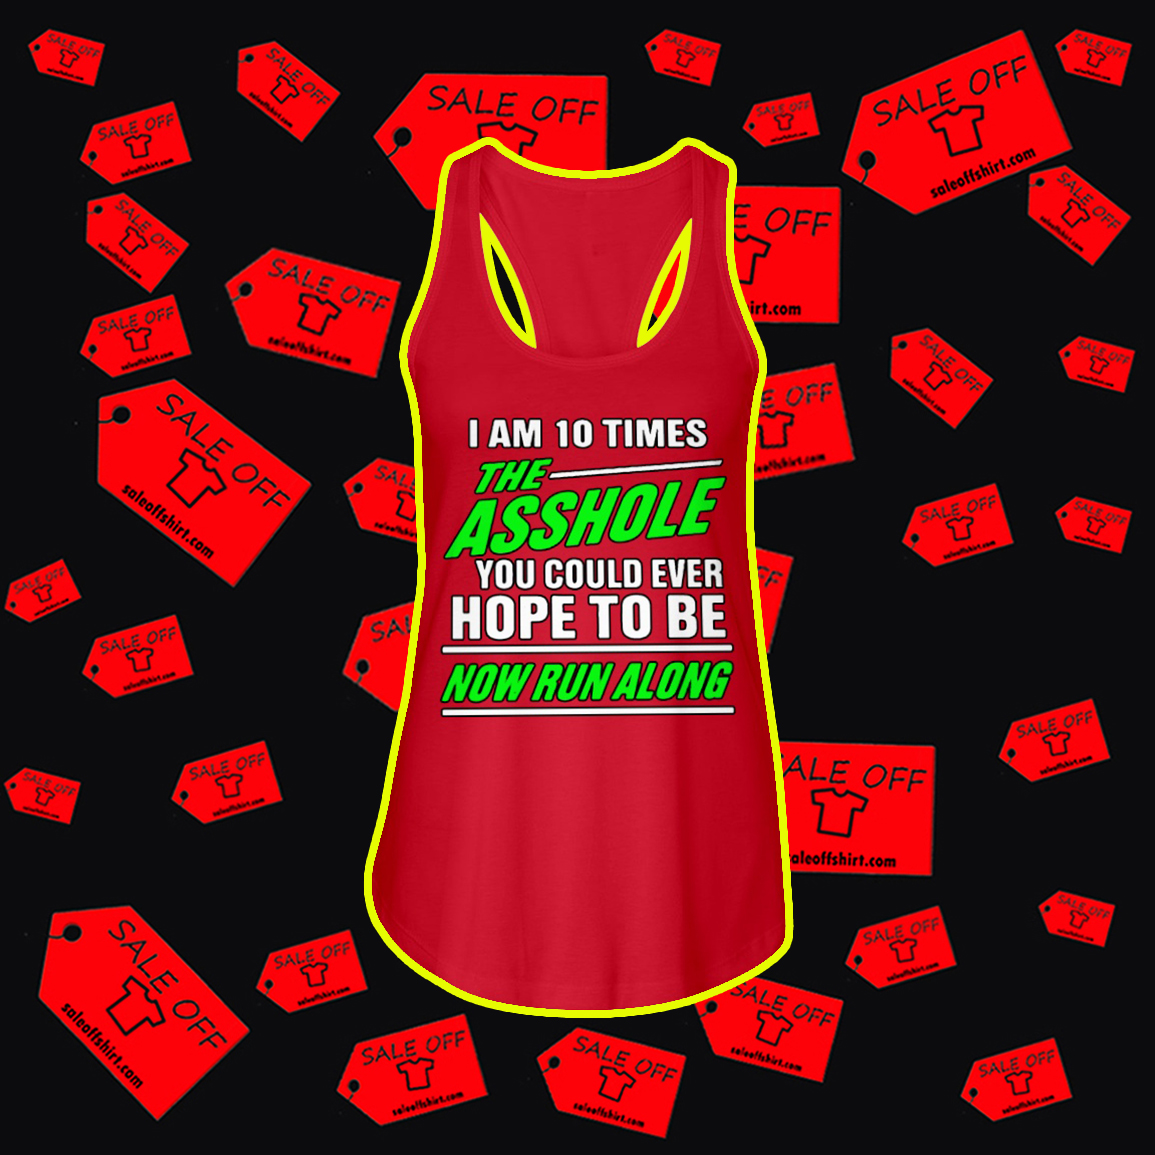 I Am 10 Times The Asshole You Could Ever Hope To Be Now Run Along tank top